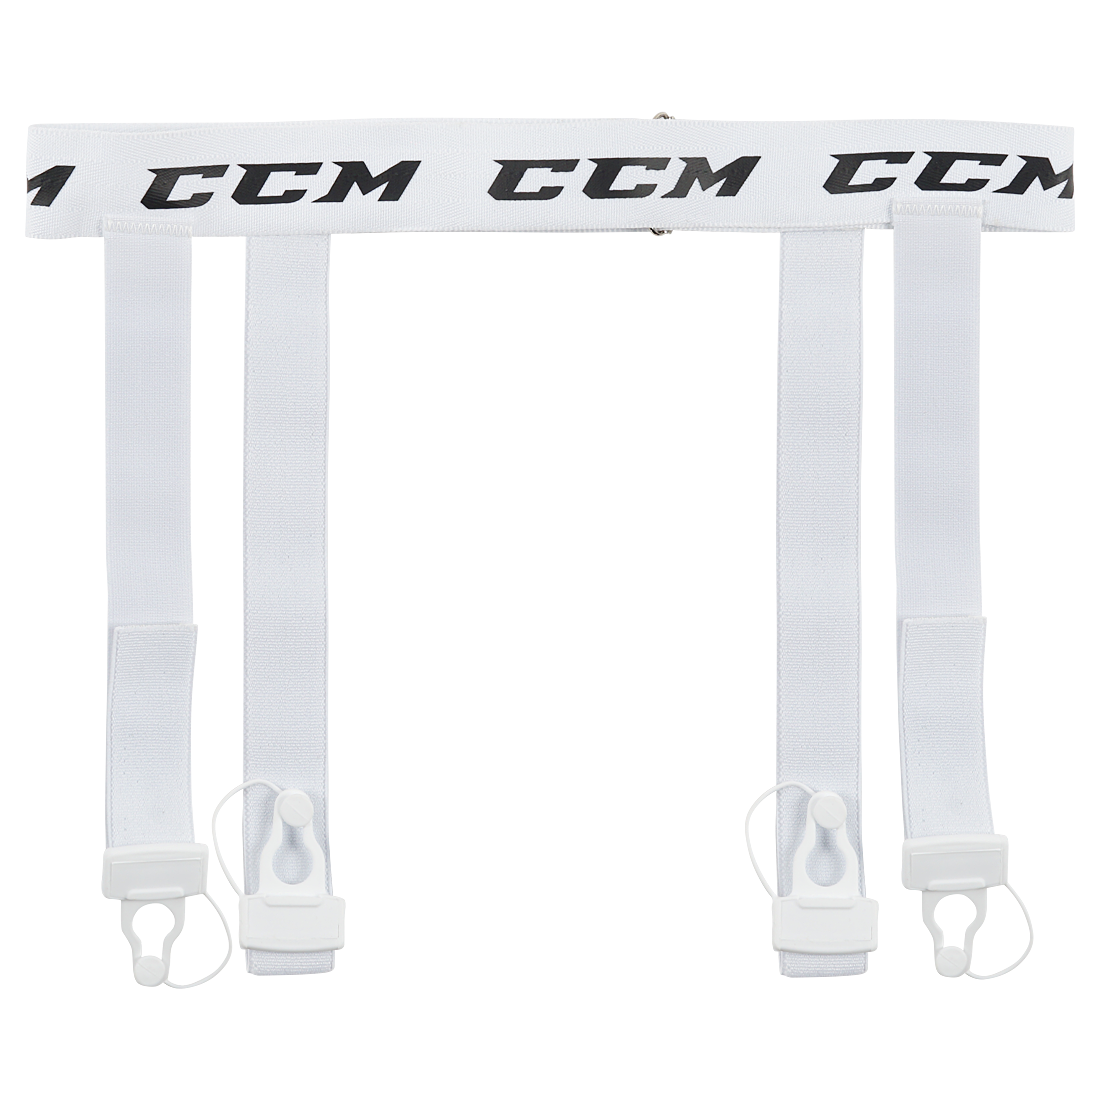 Пояс для гамаш CCM Loop JR